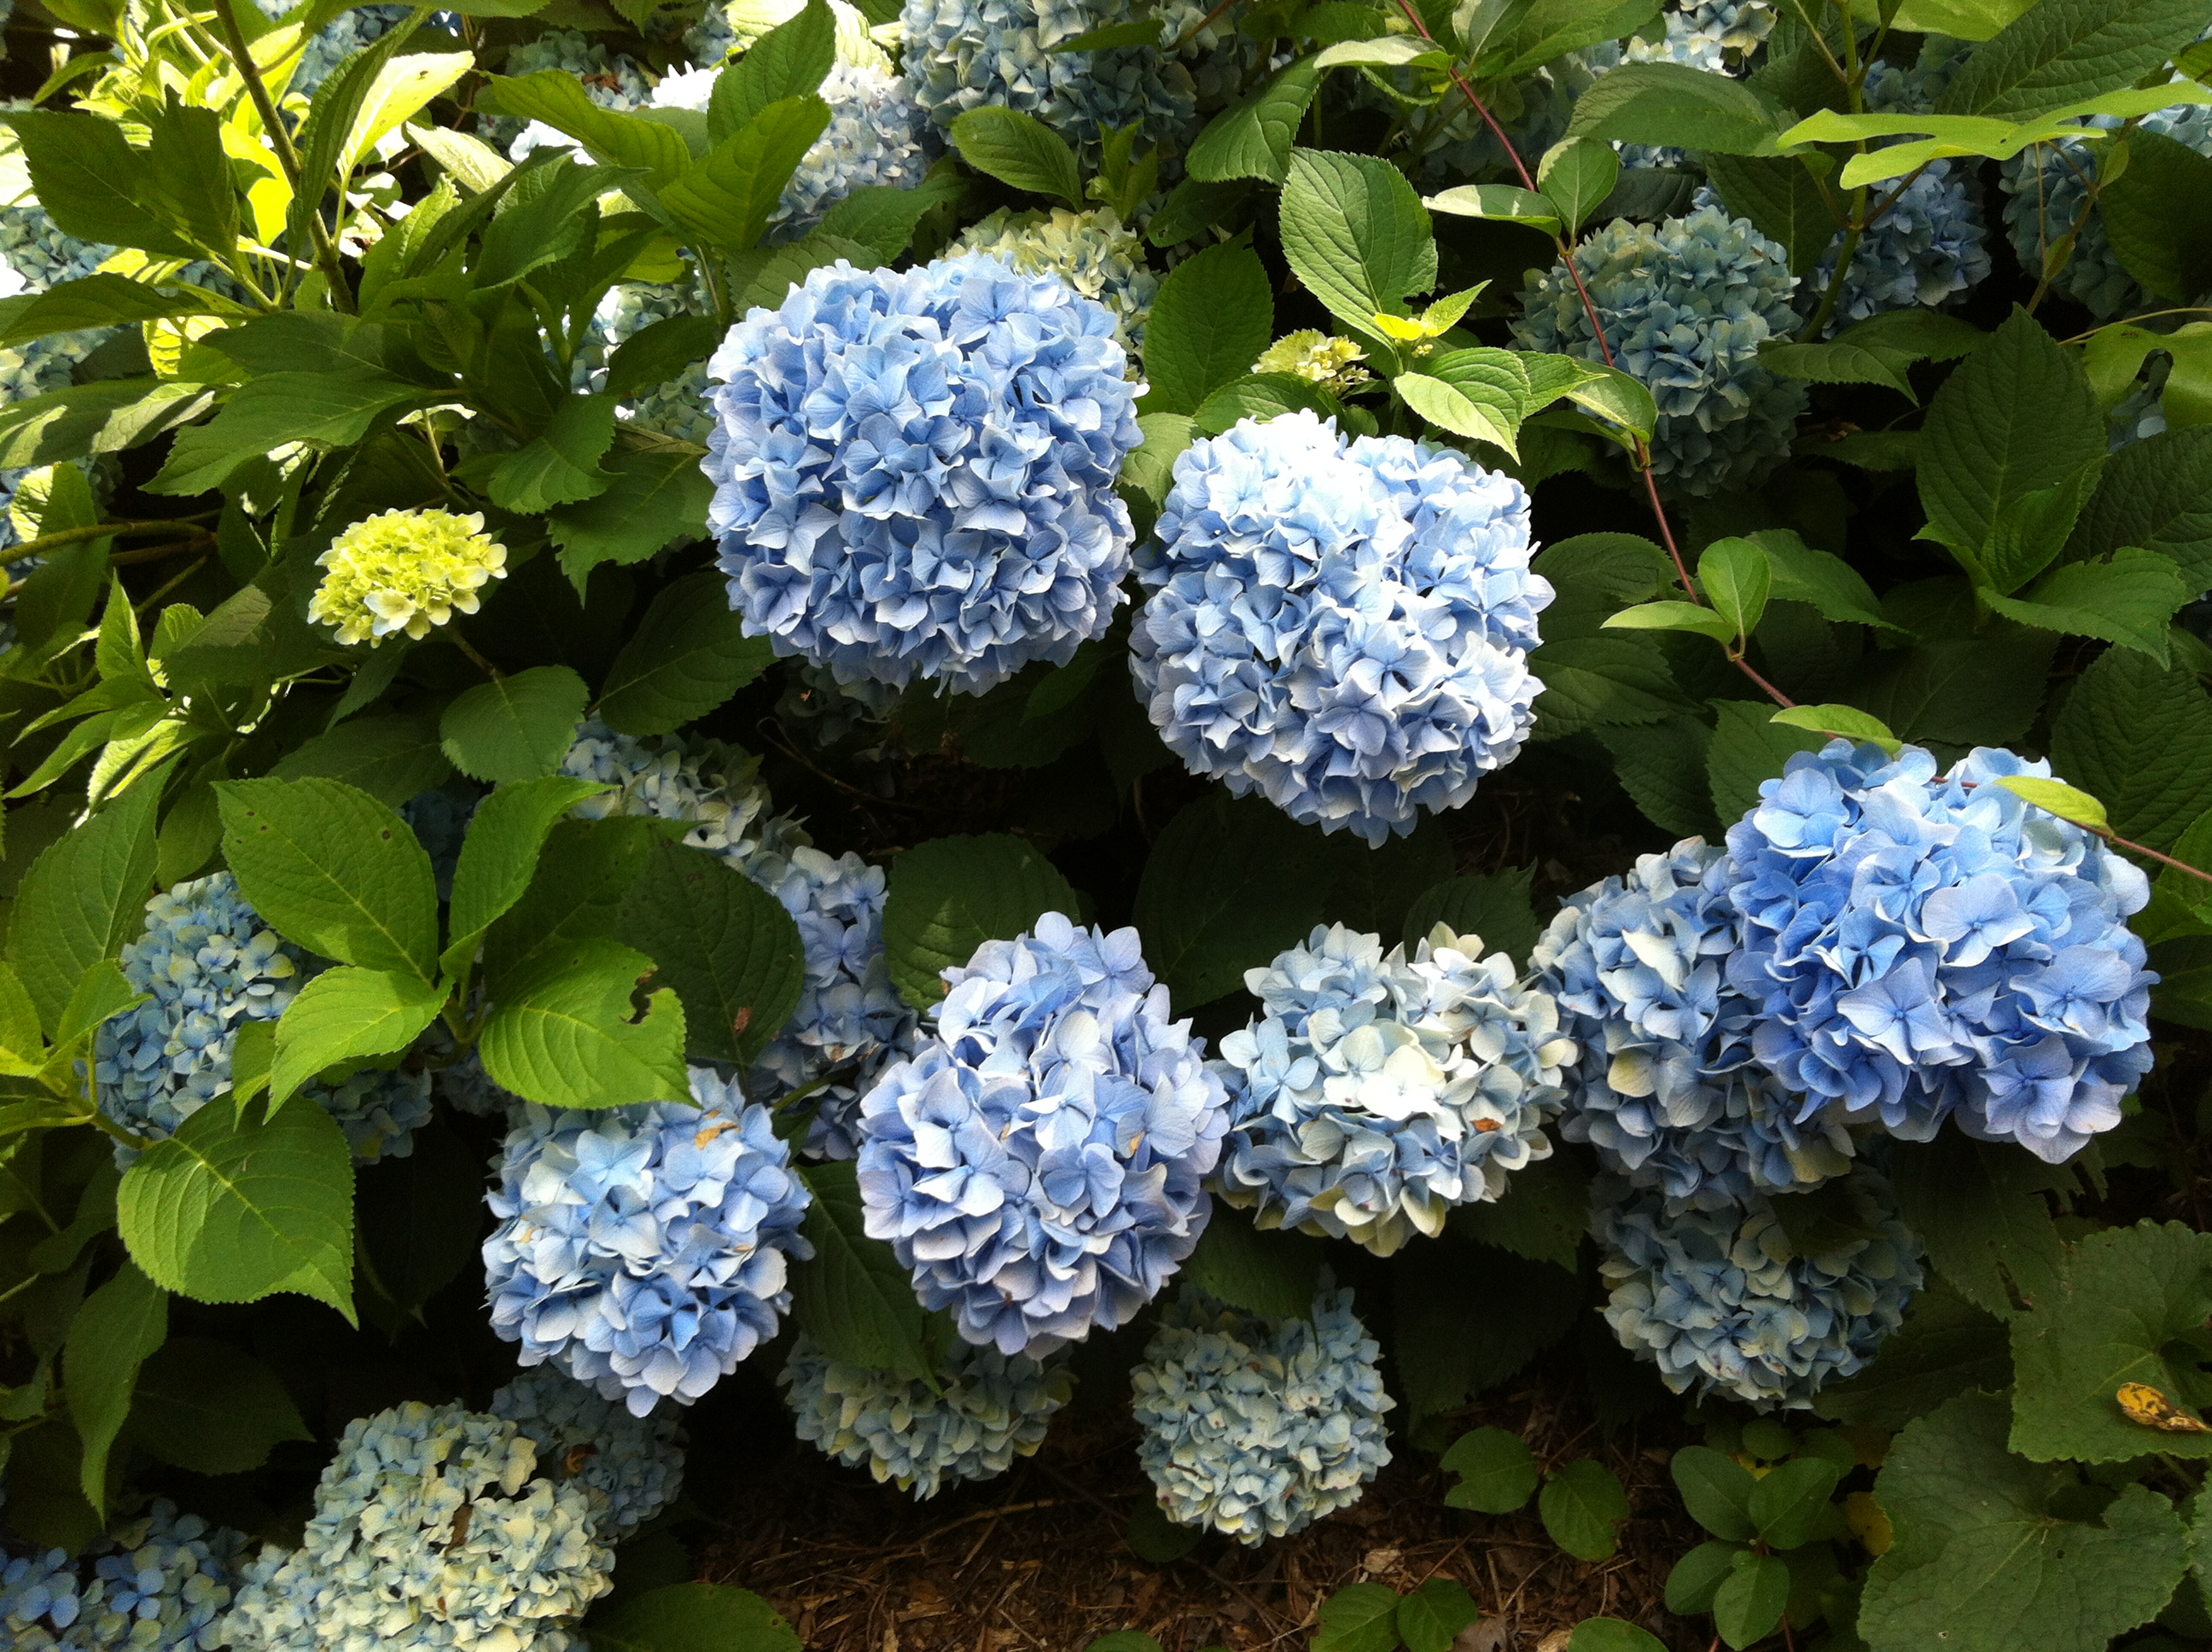 Blue Hydrangeas On My Walk